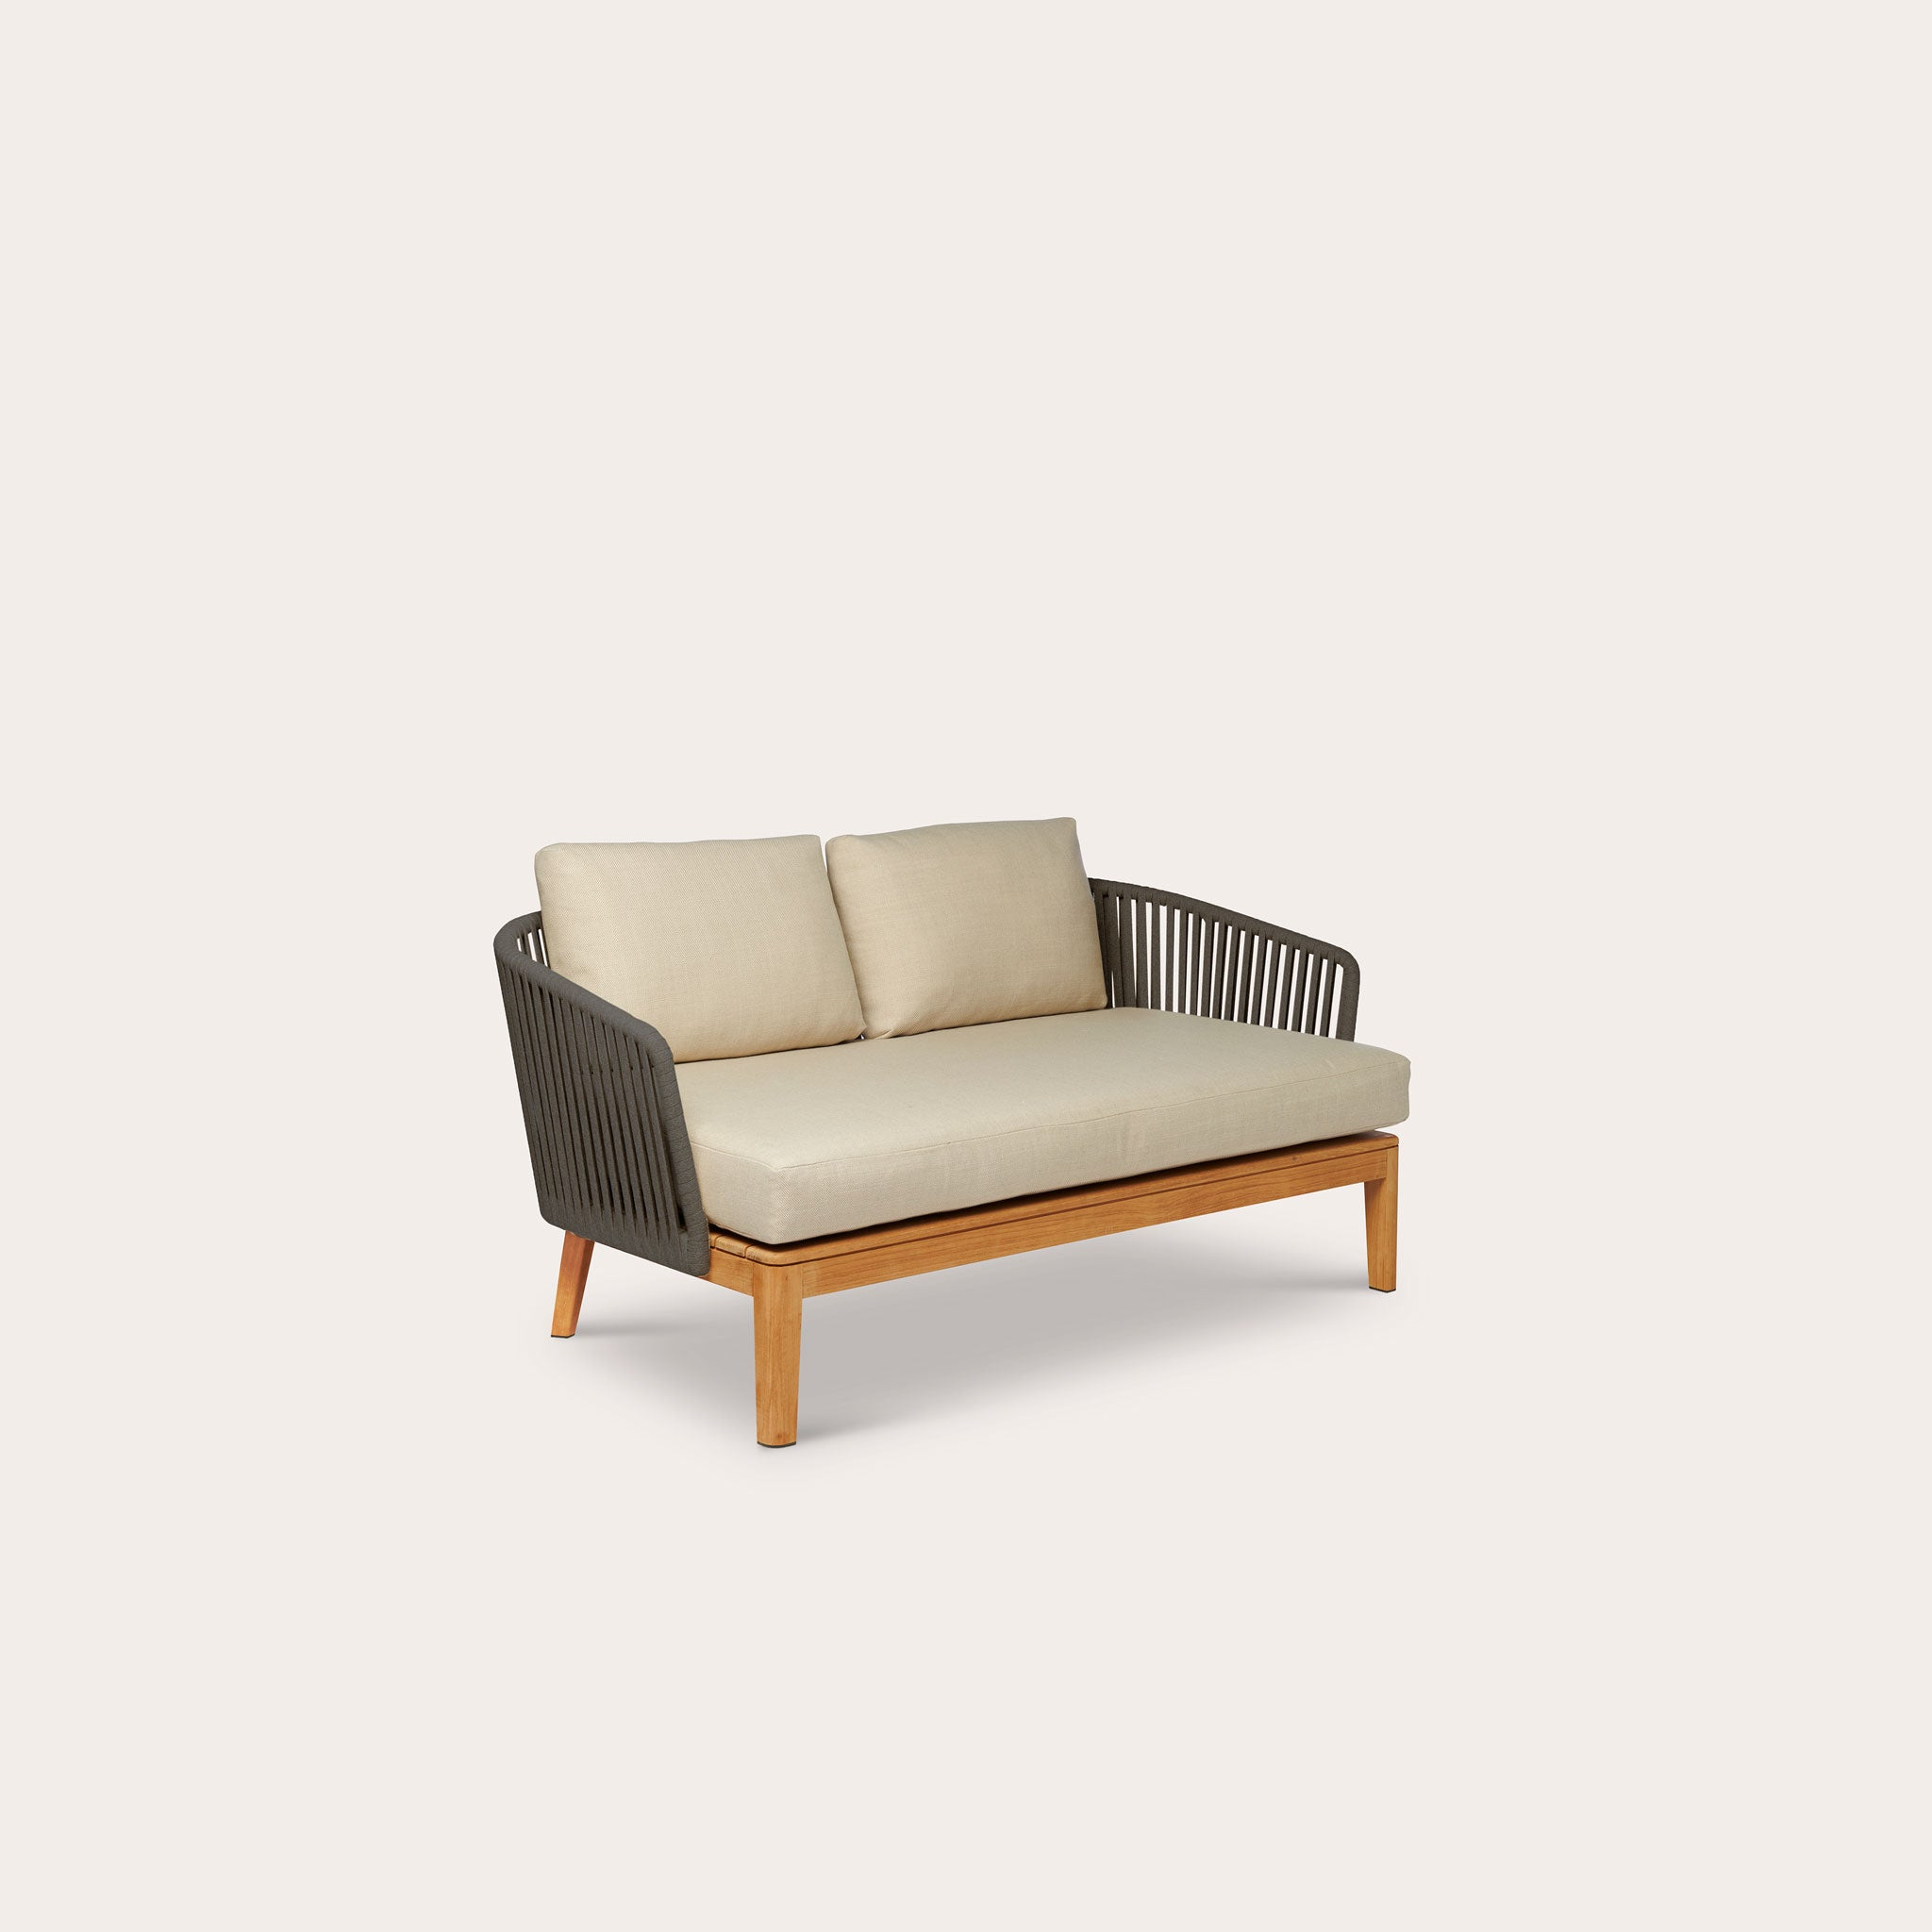 MOOD Sofa Outdoor Studio Segers Designer Furniture Sku: 007-200-11914